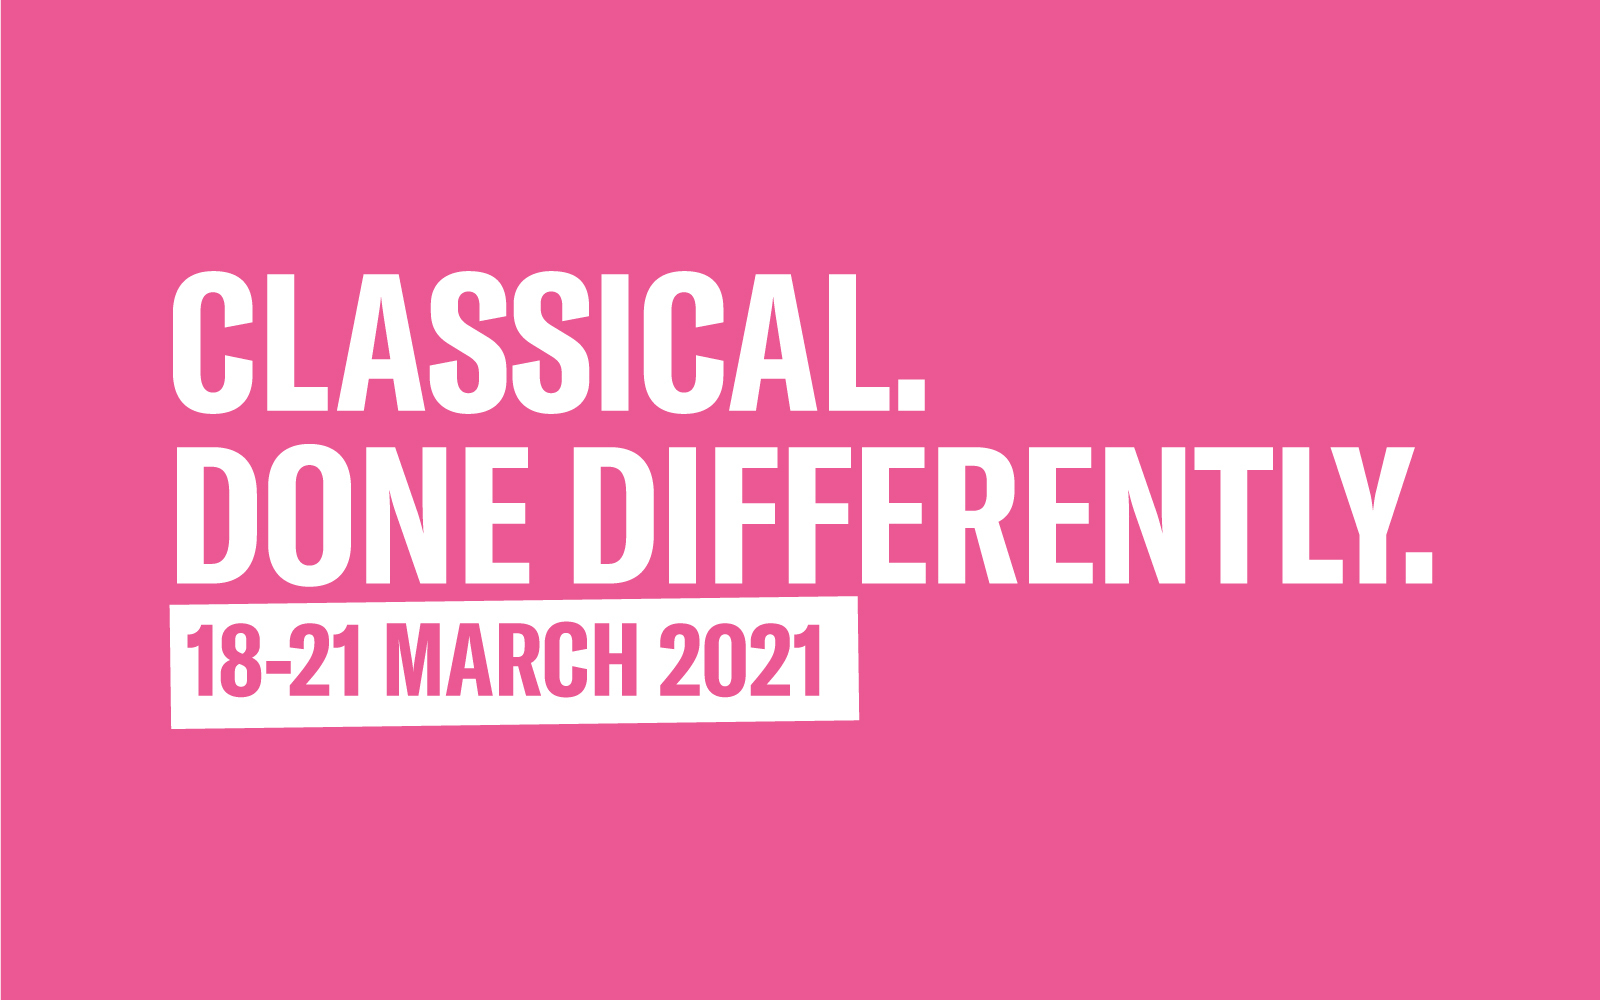 classical vauxhall, music done differently